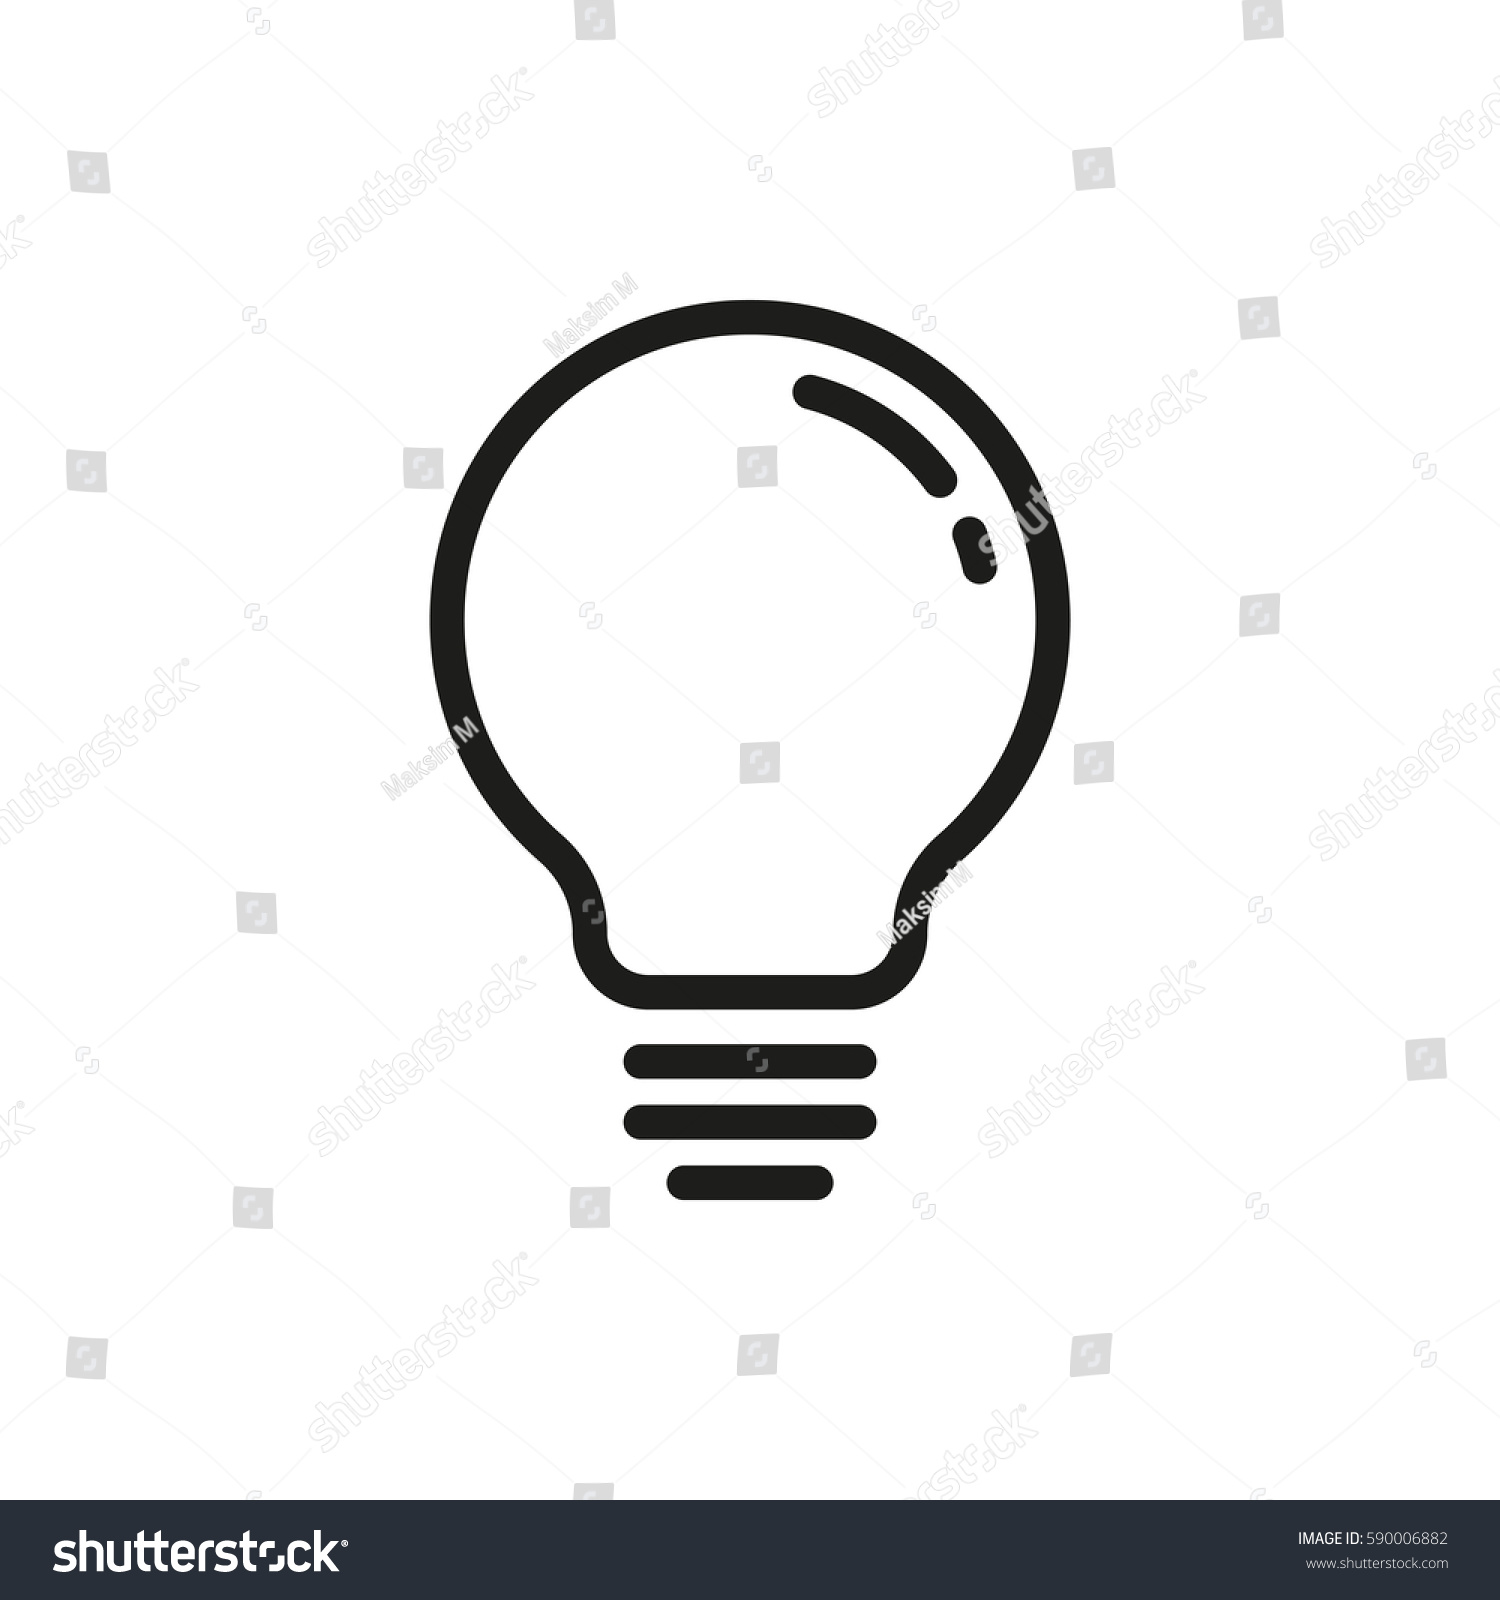 lightbulb vector icon stock vector 2018 590006882 shutterstock rh shutterstock com light bulb vector drawing vector light bulb outline